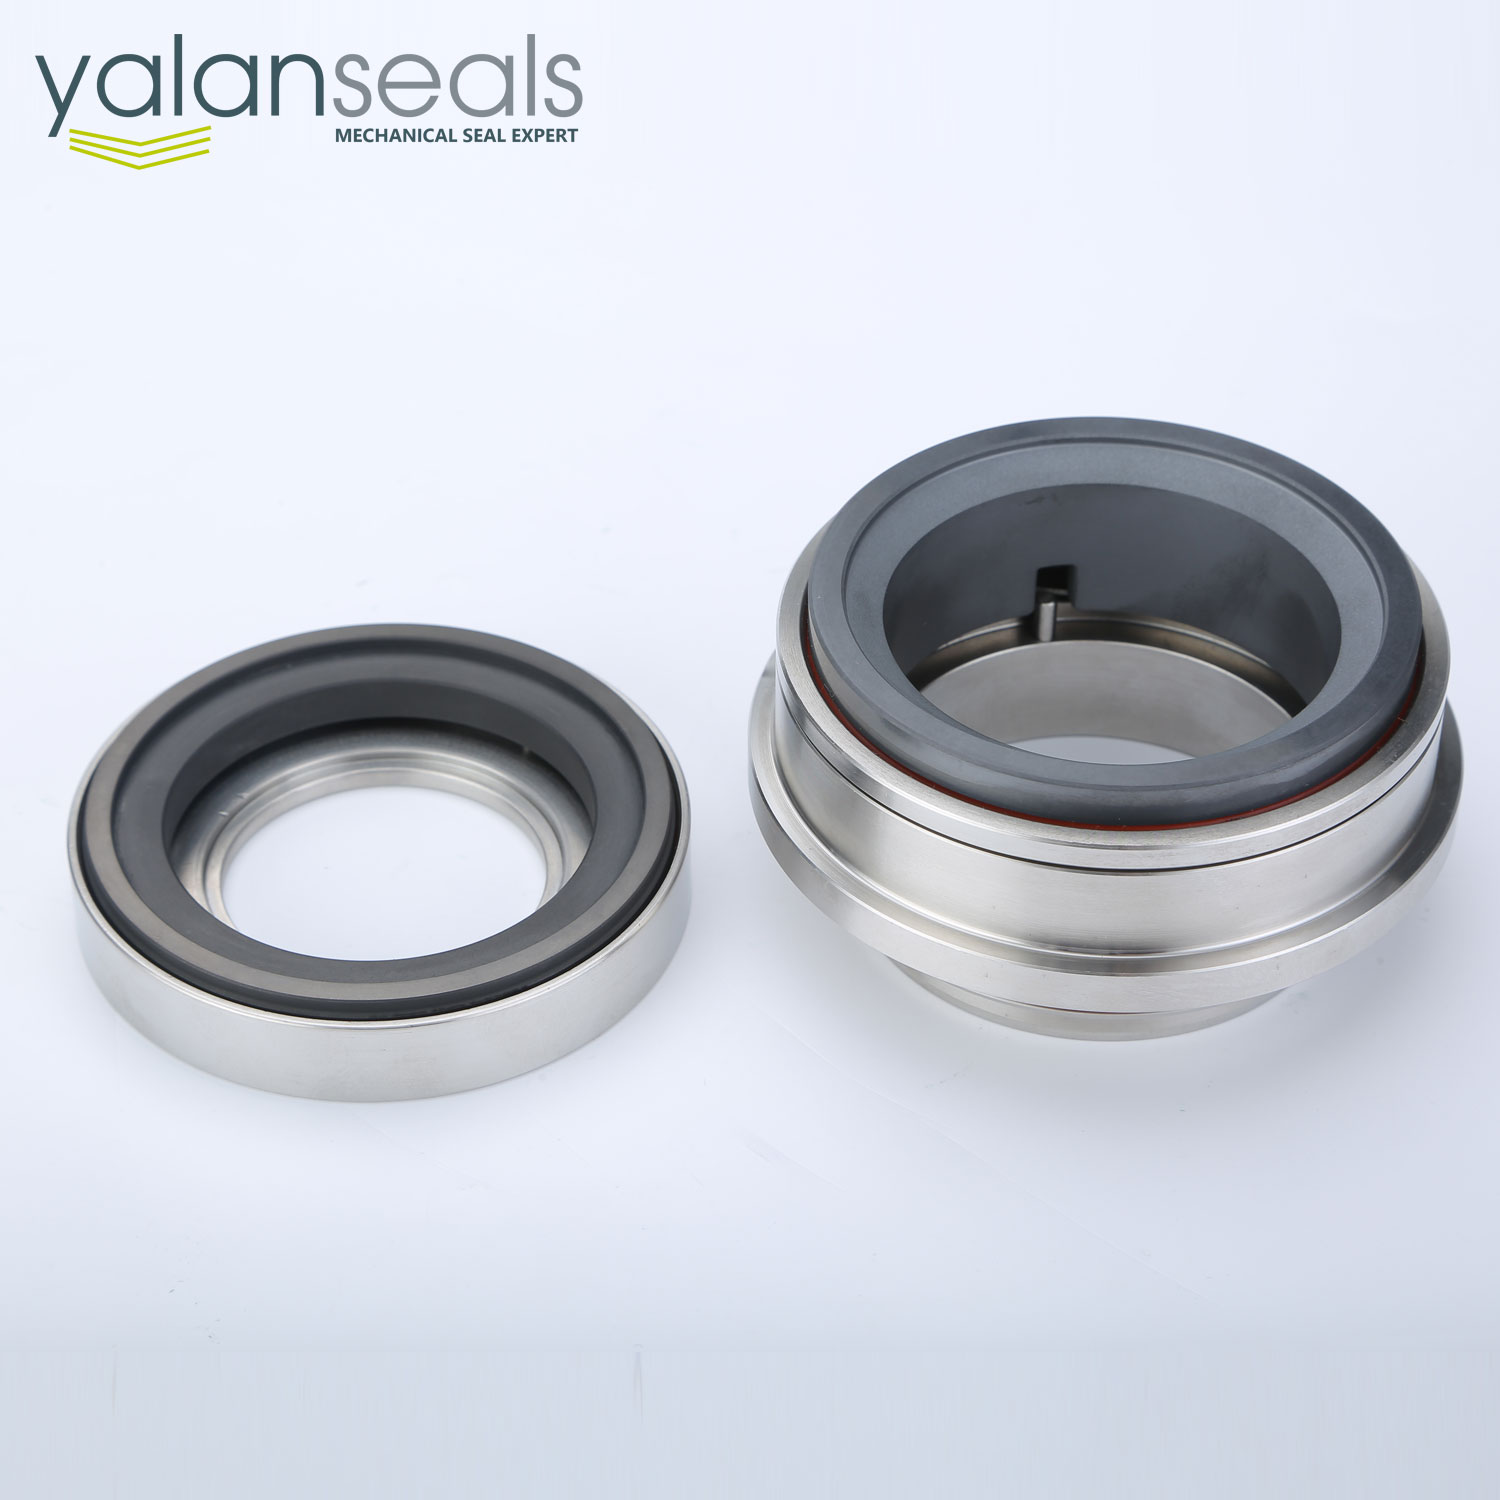 587-SP Mechanical Seals for Paper-making Equipment and other ANDRITZ Industrial Pumps